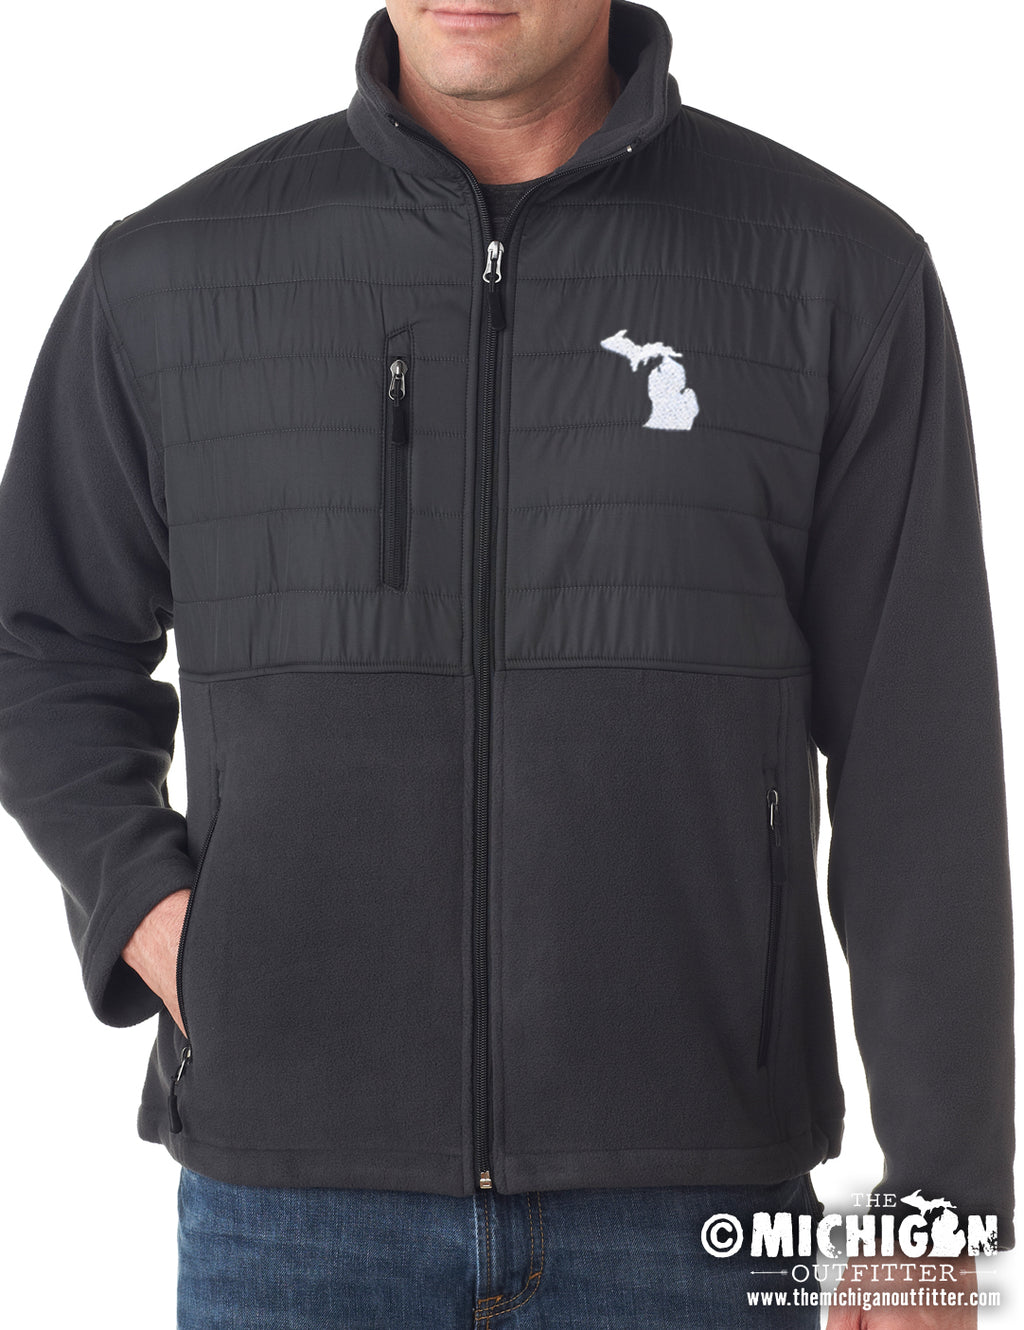 Men's Fleece Jacket - Charcoal Black